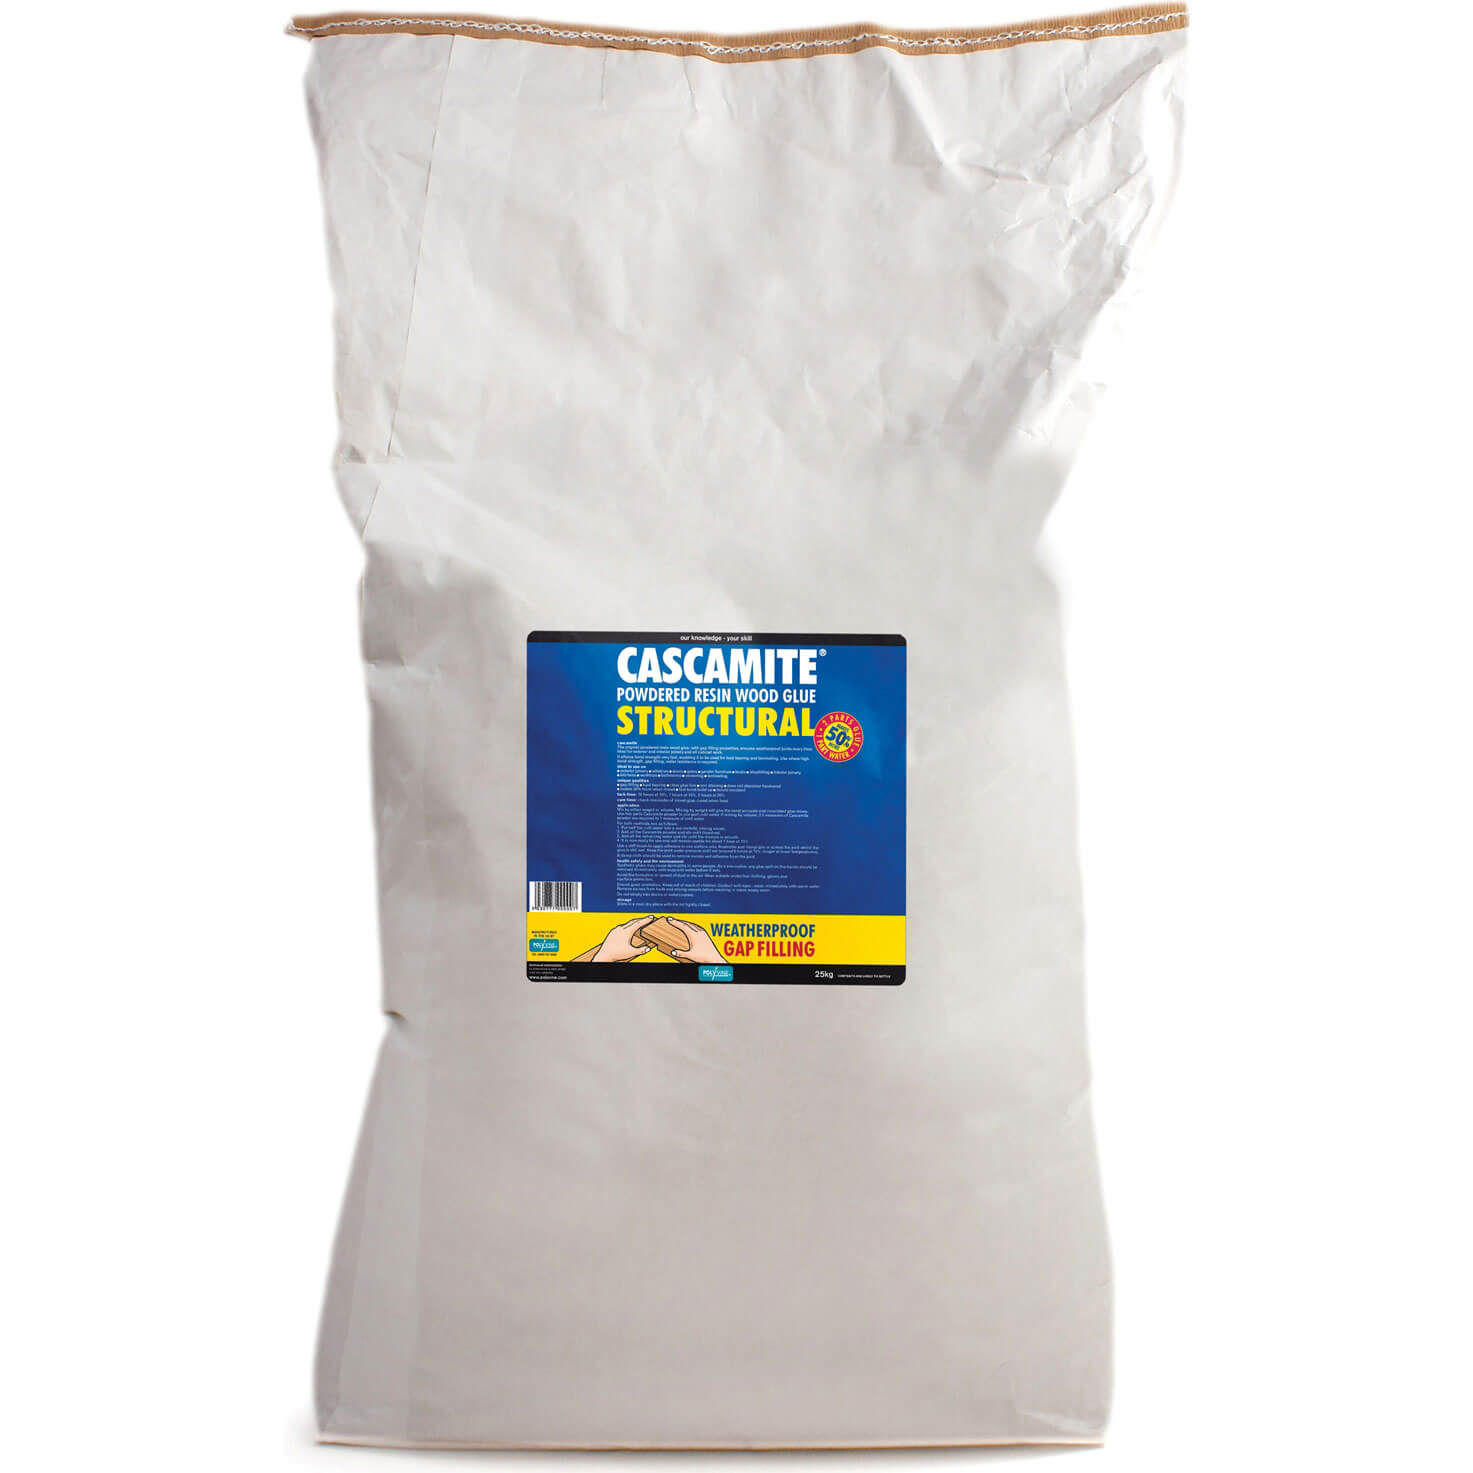 Image of Humbrol Cascamite One Shot Wood Adhesive 25kg